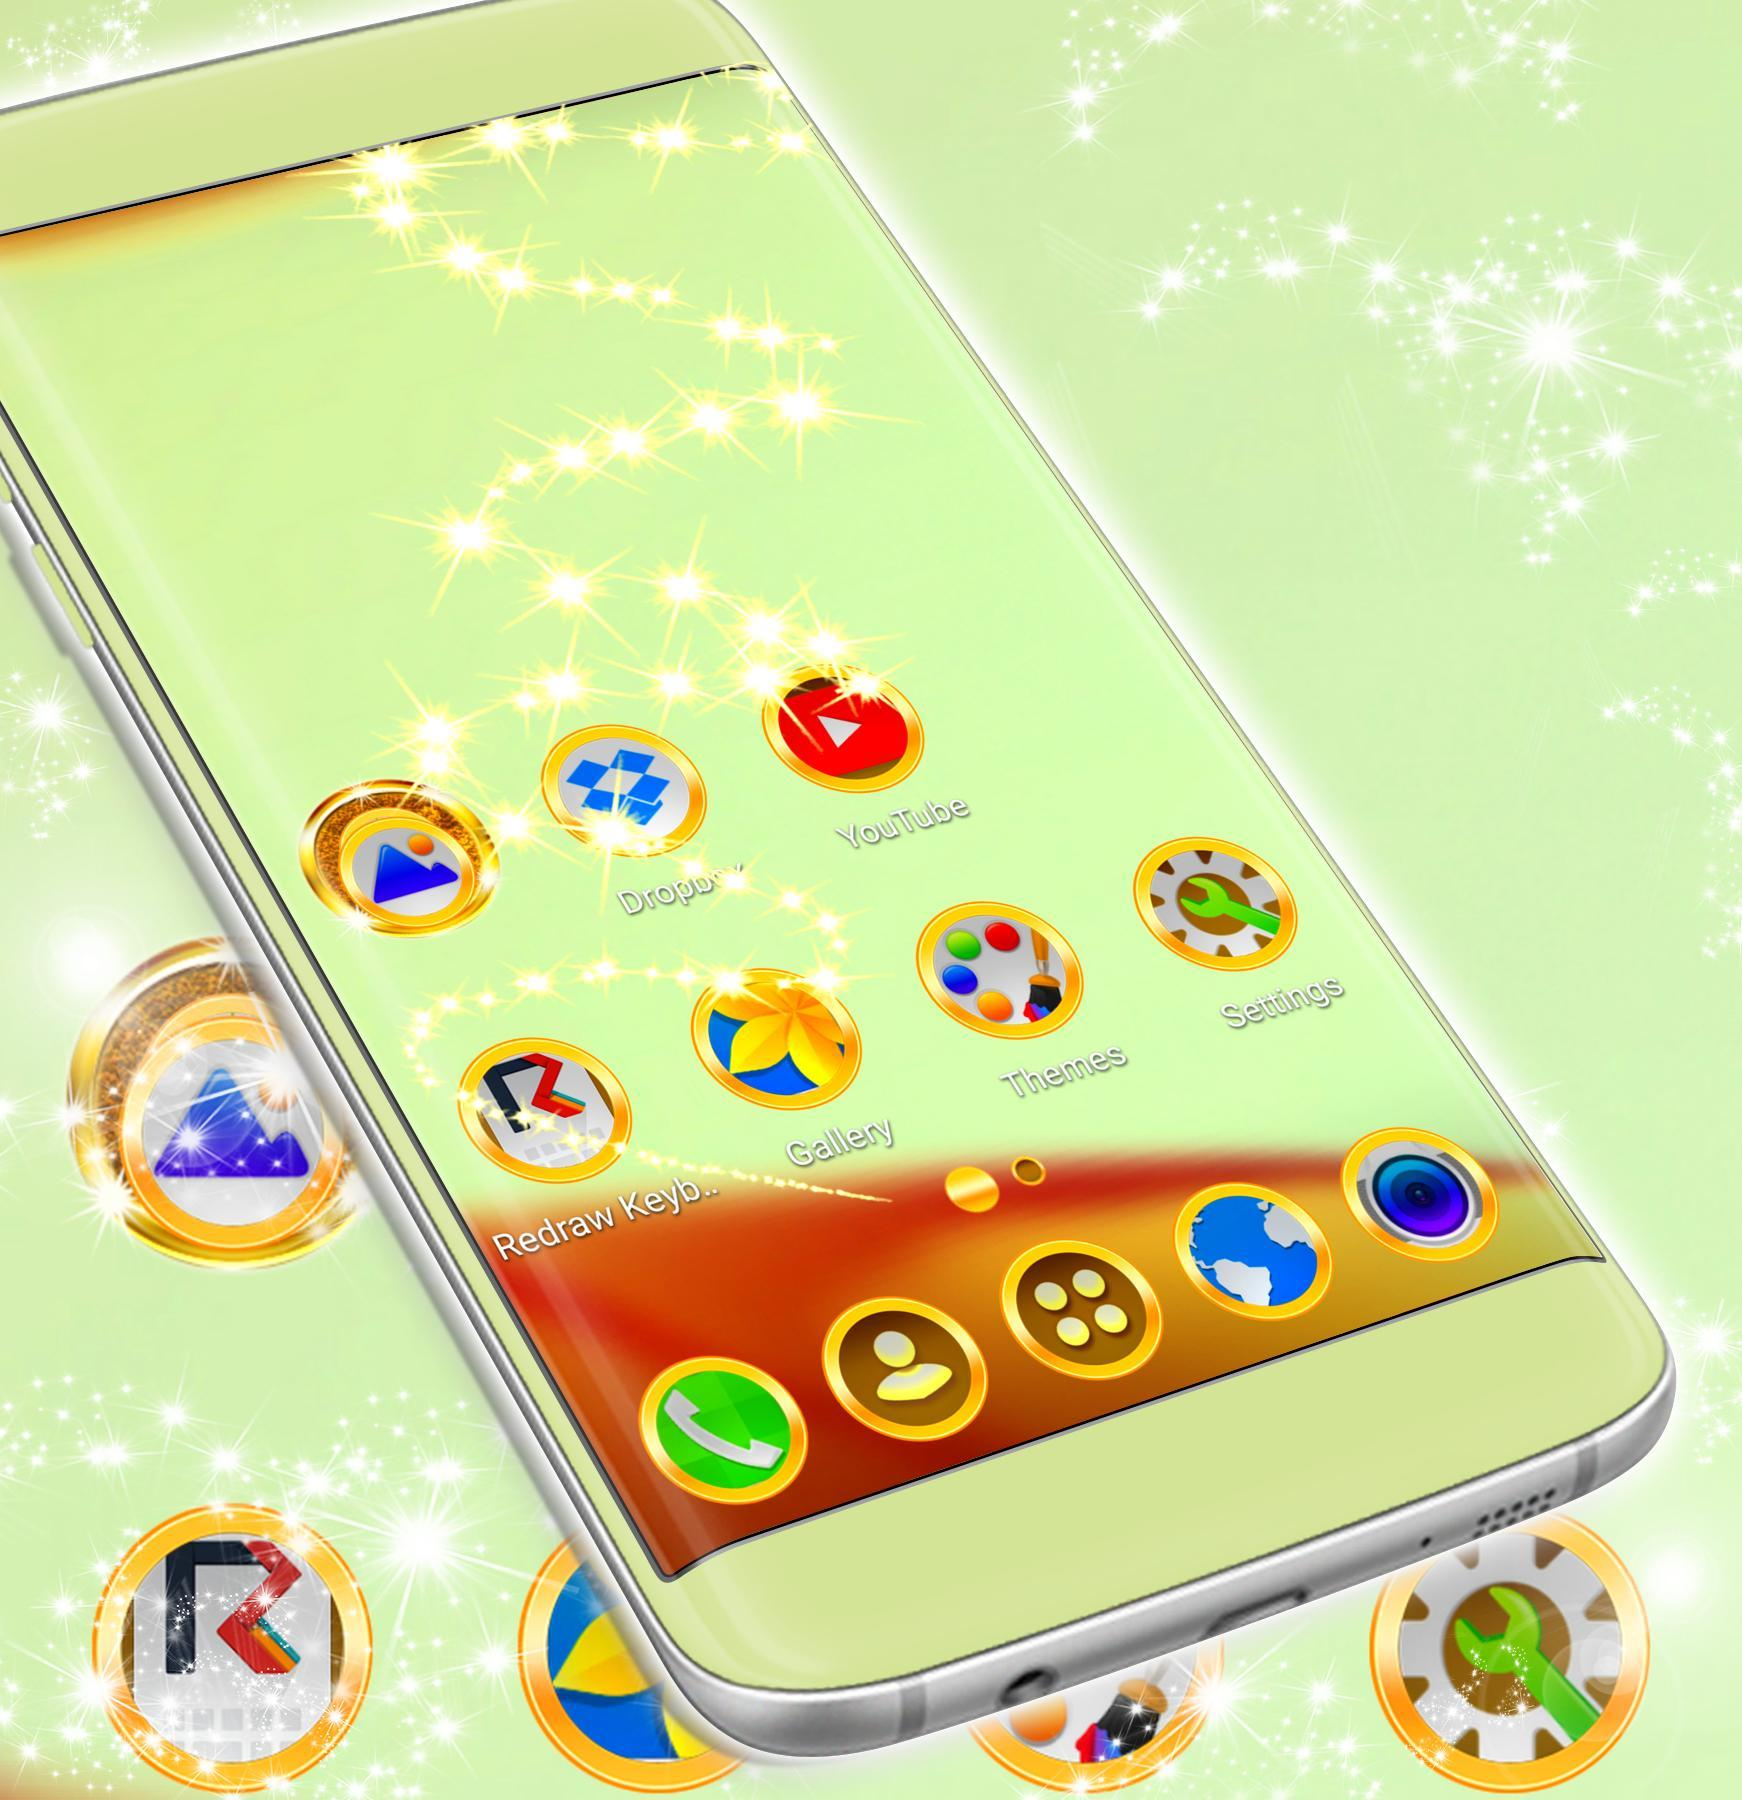 Launcher For Samsung Galaxy J7 for Android - APK Download